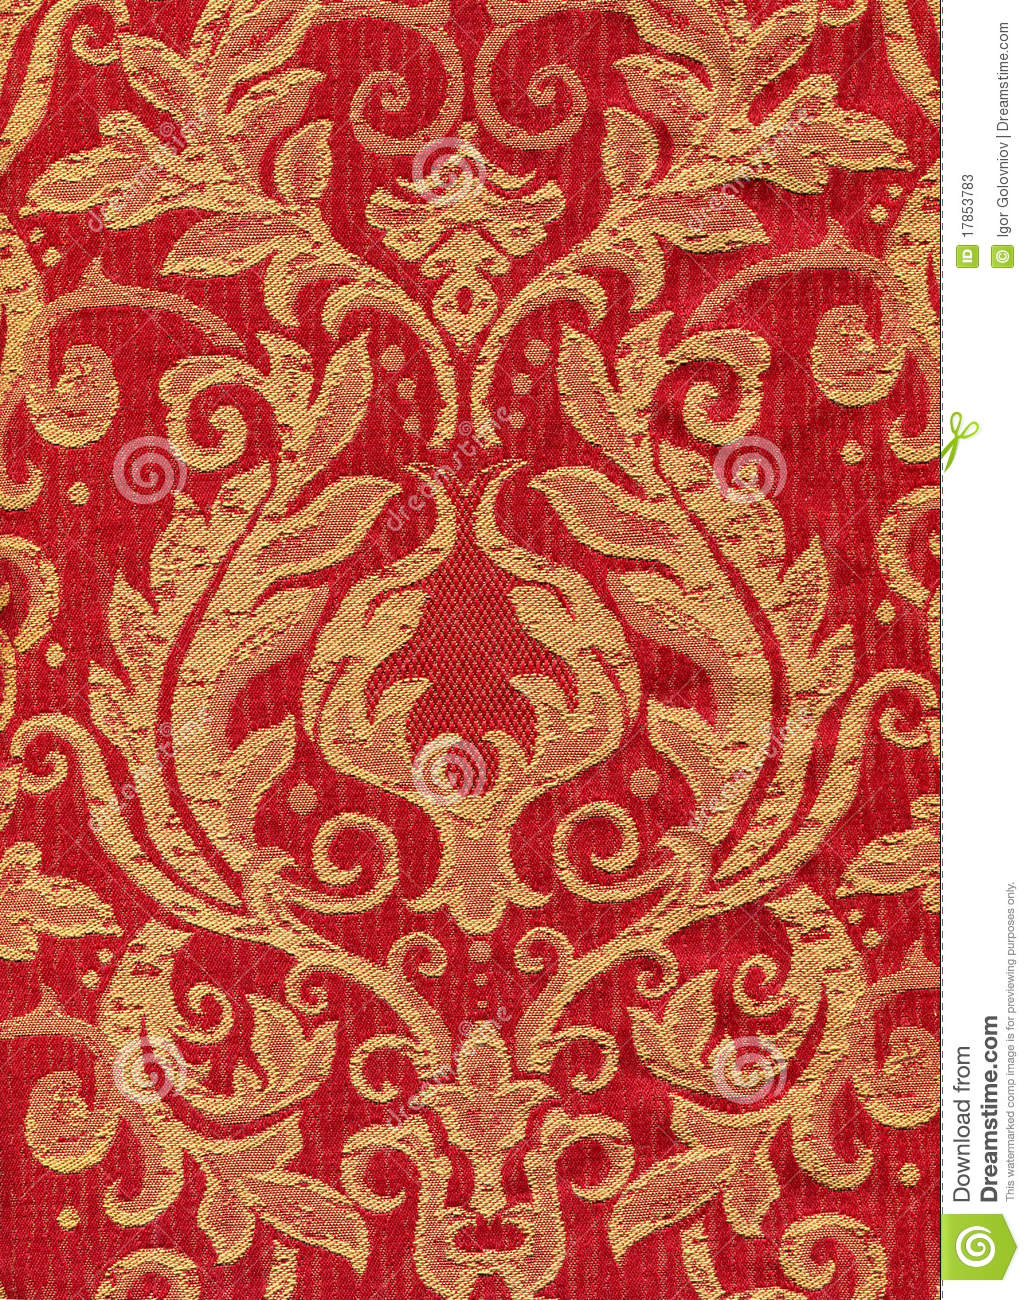 Red vintage fabric stock photos image 17853783 for Vintage fabric